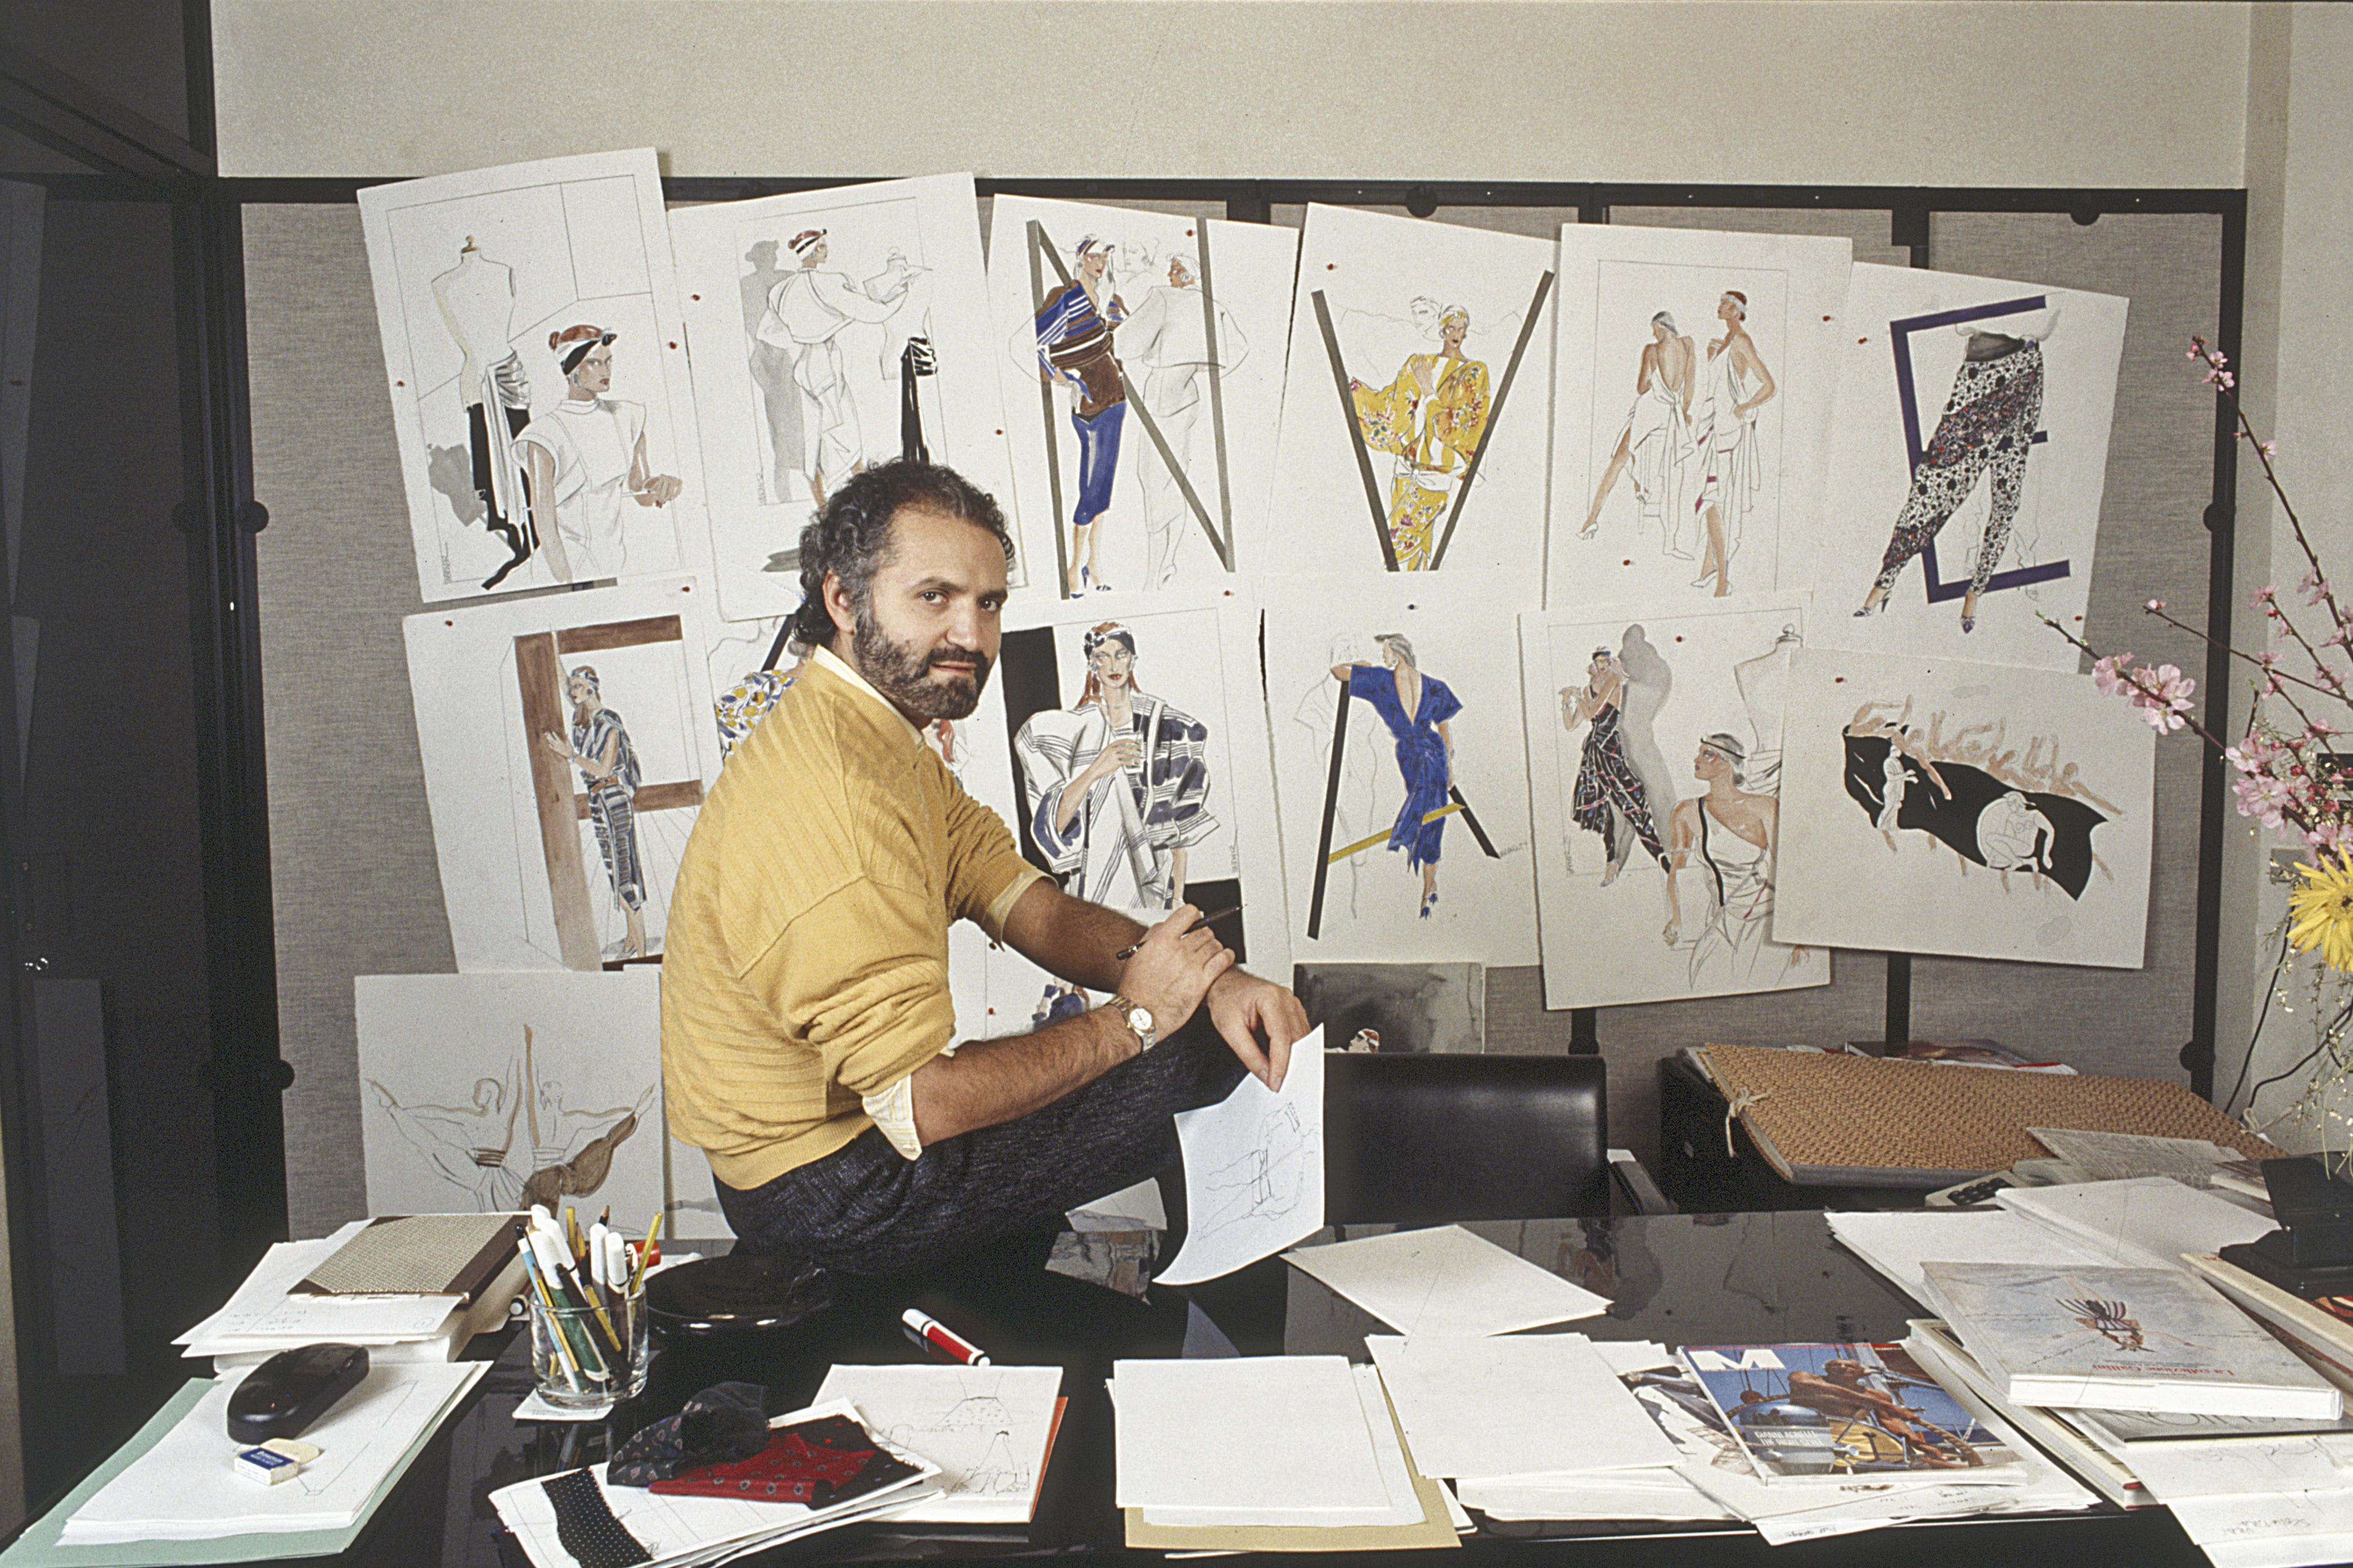 Gianni Versace in his study